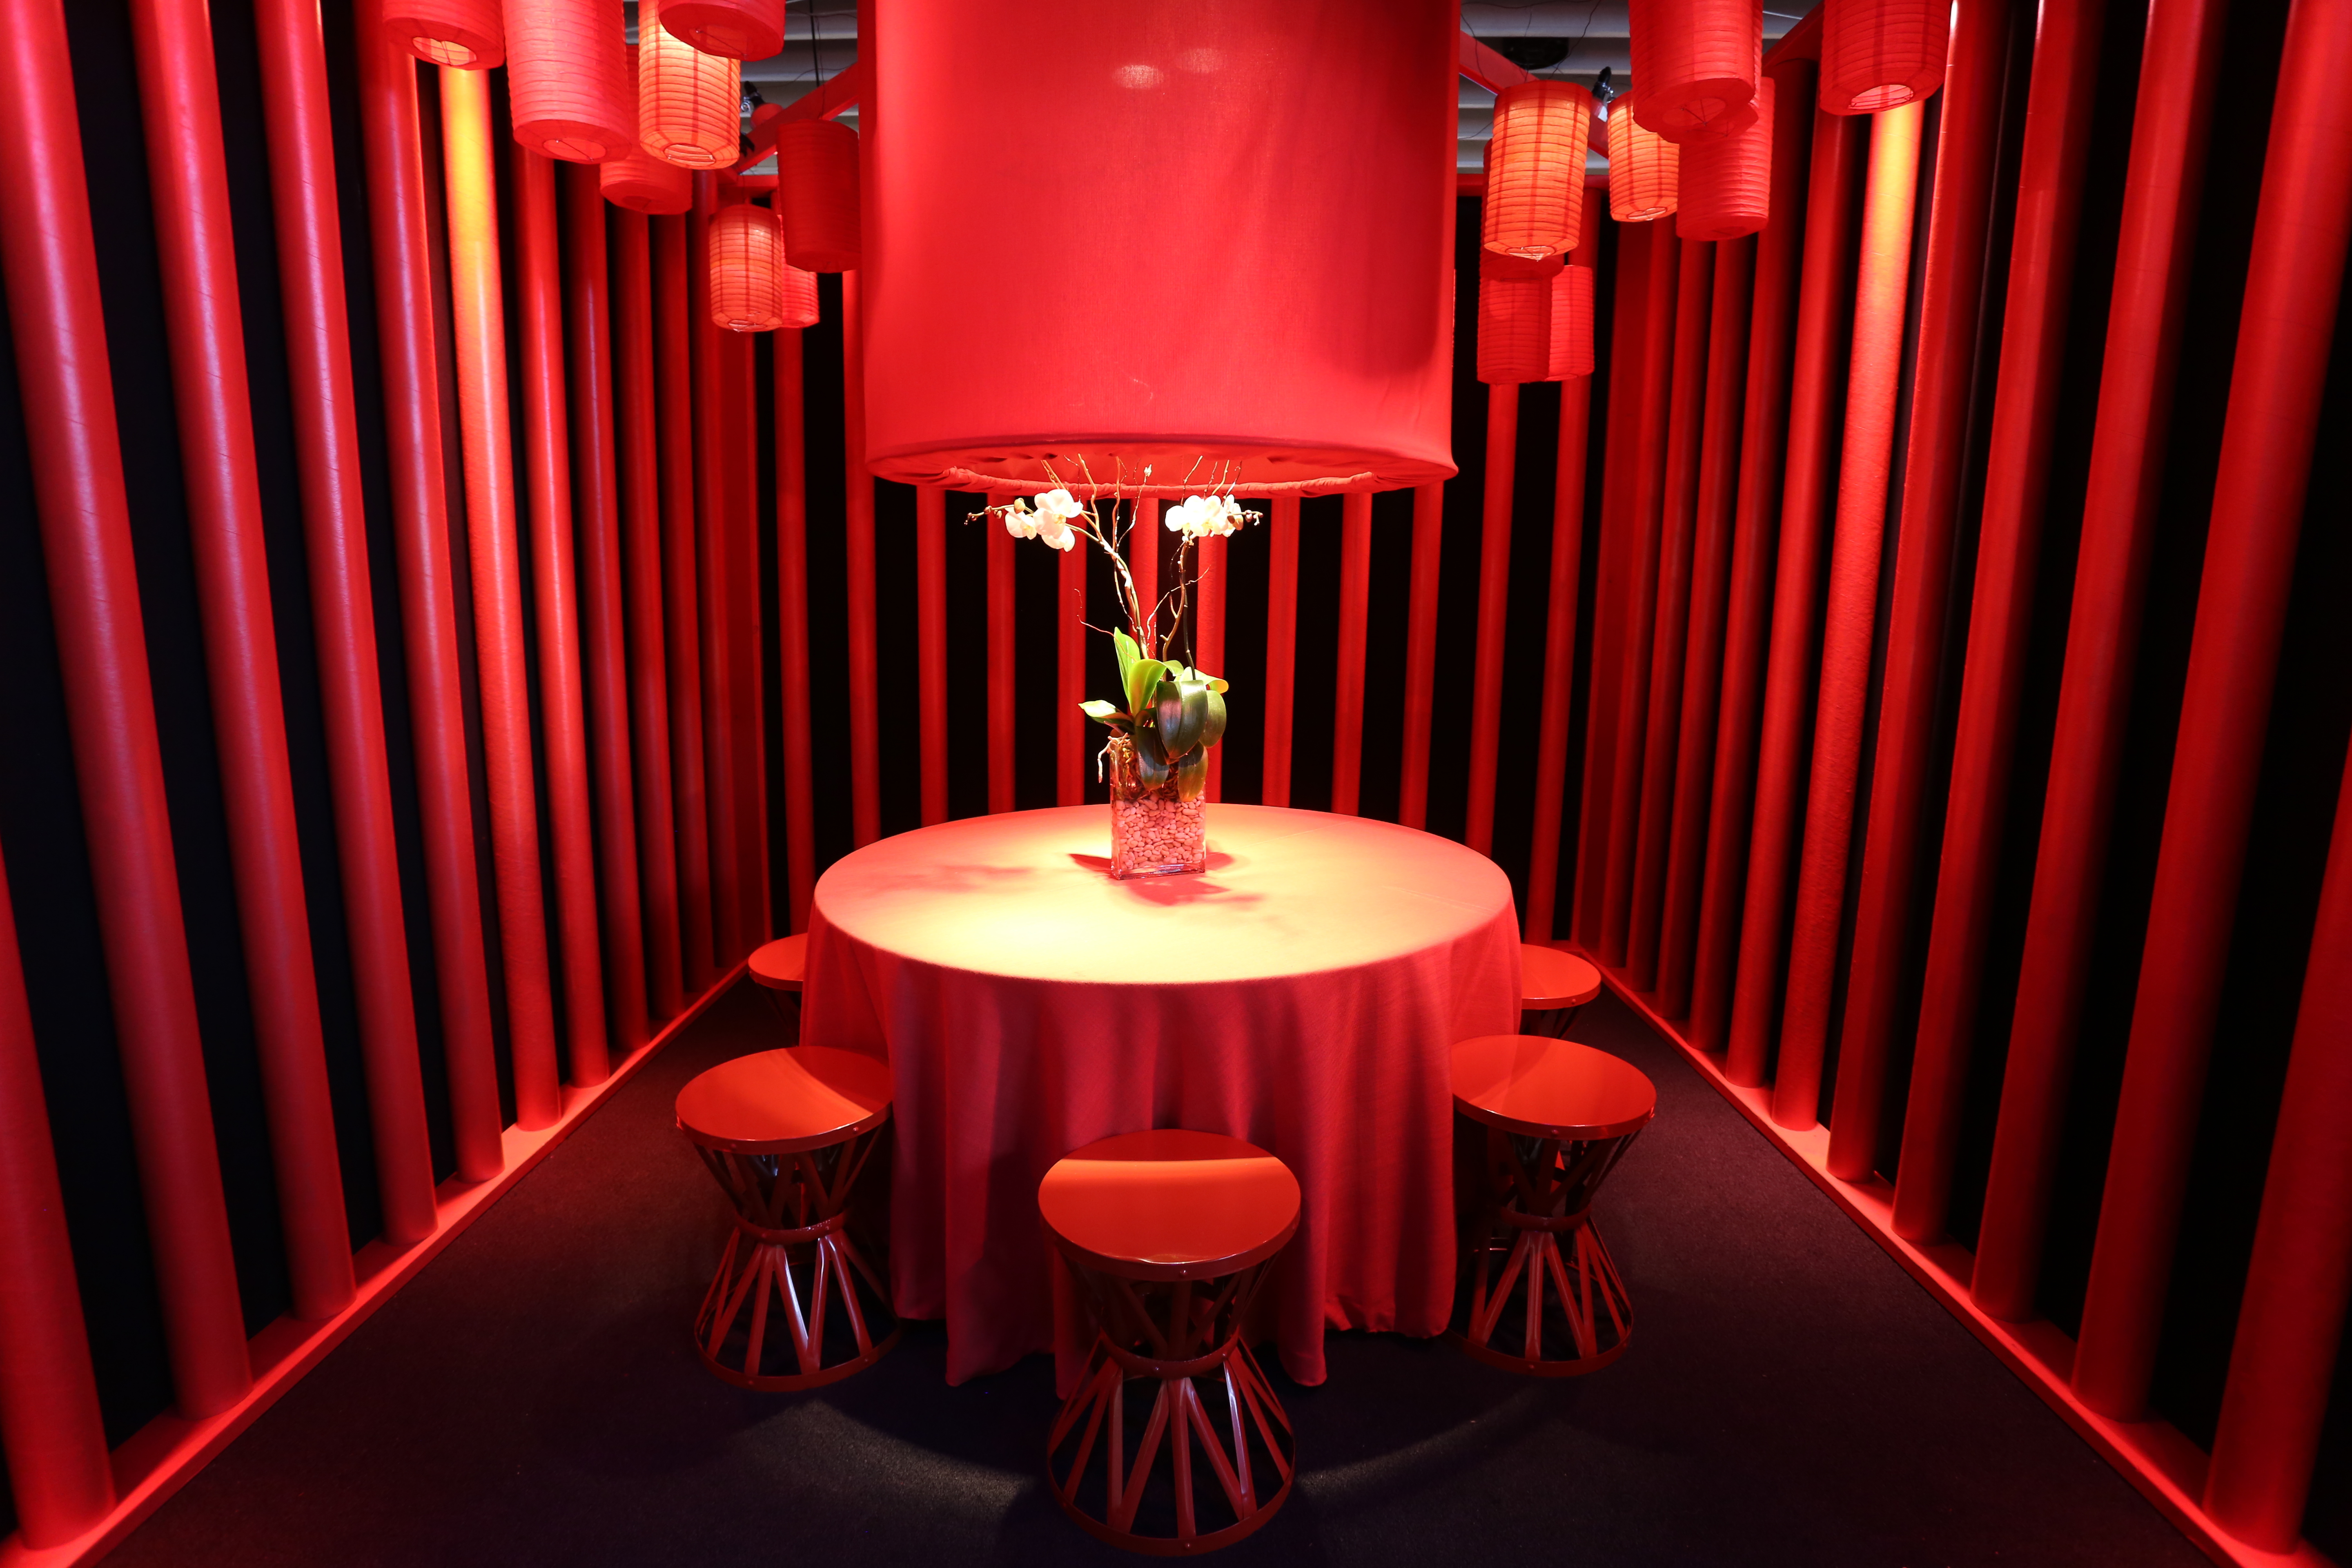 Empty room with walls covered by red drapes. a round red table in the center of the room with a floral arrangement on top and red paper lanterns hanging above it.